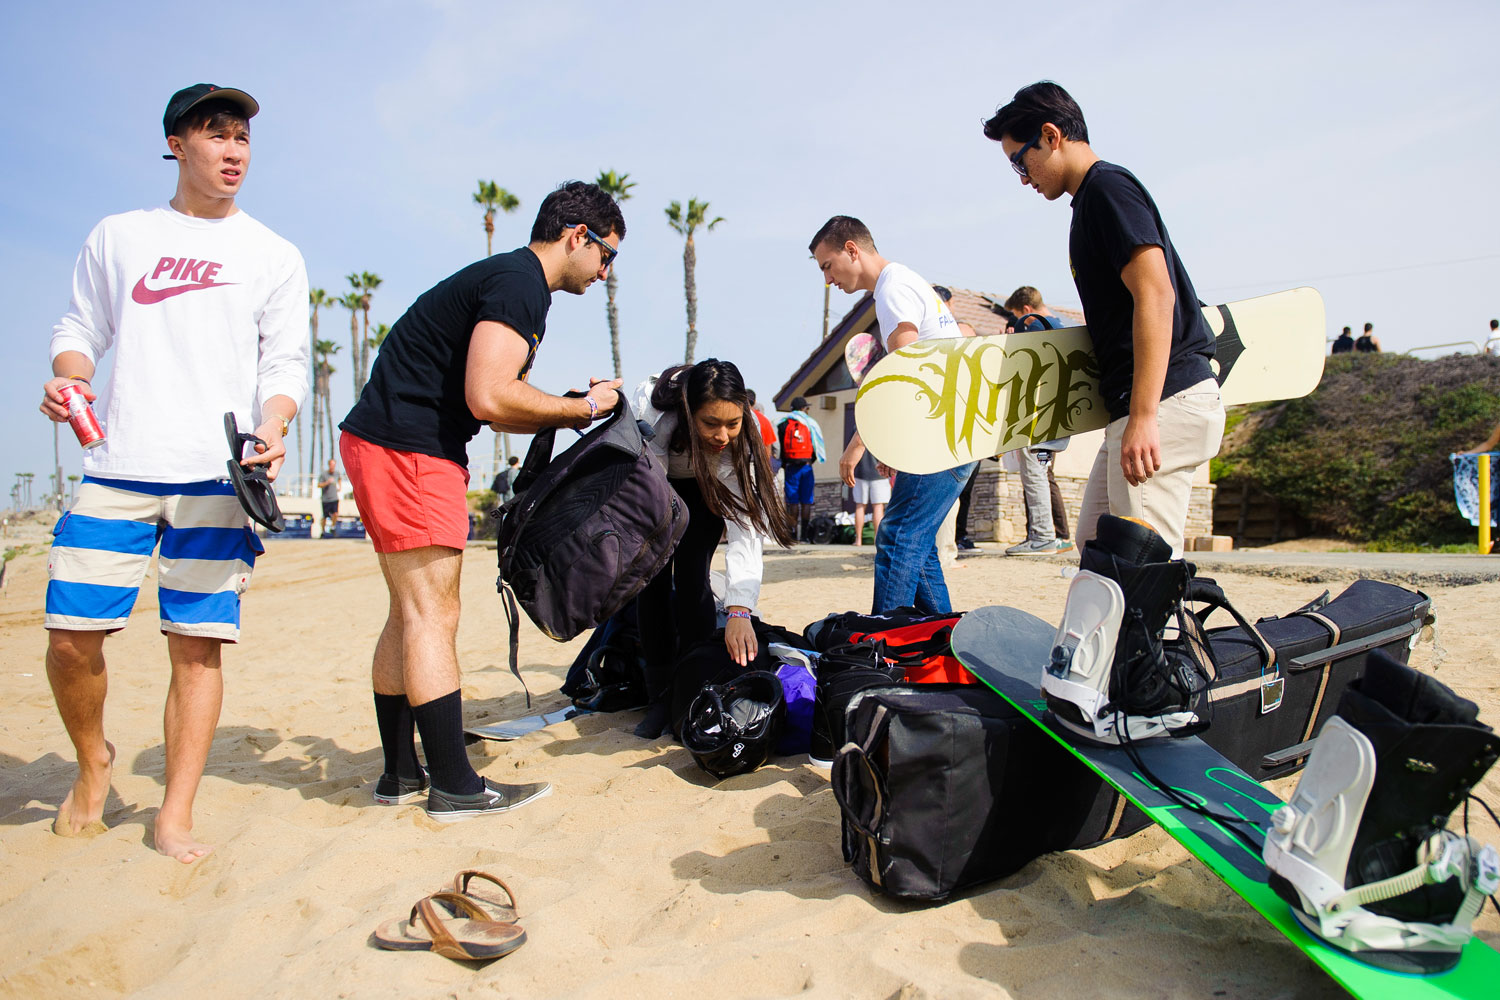 Contestants packing their boards and gear to travel to their next location for some thrills on the slopes.